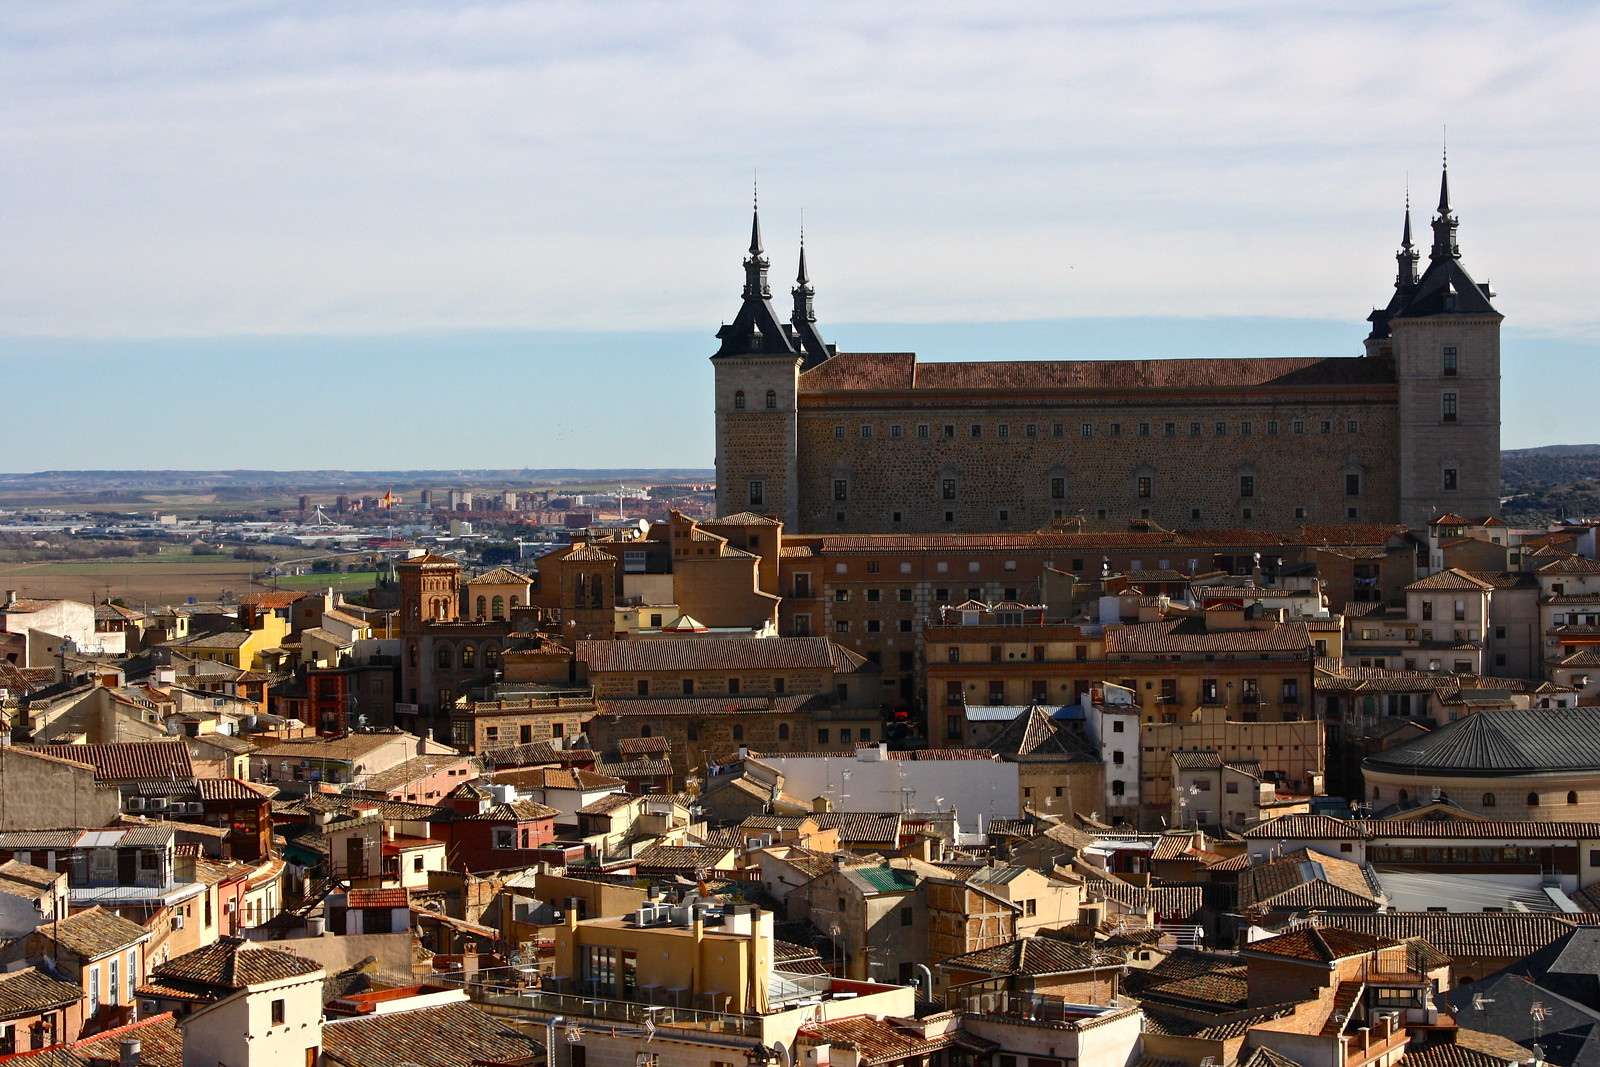 Alcázar castle in Toledo, Spain